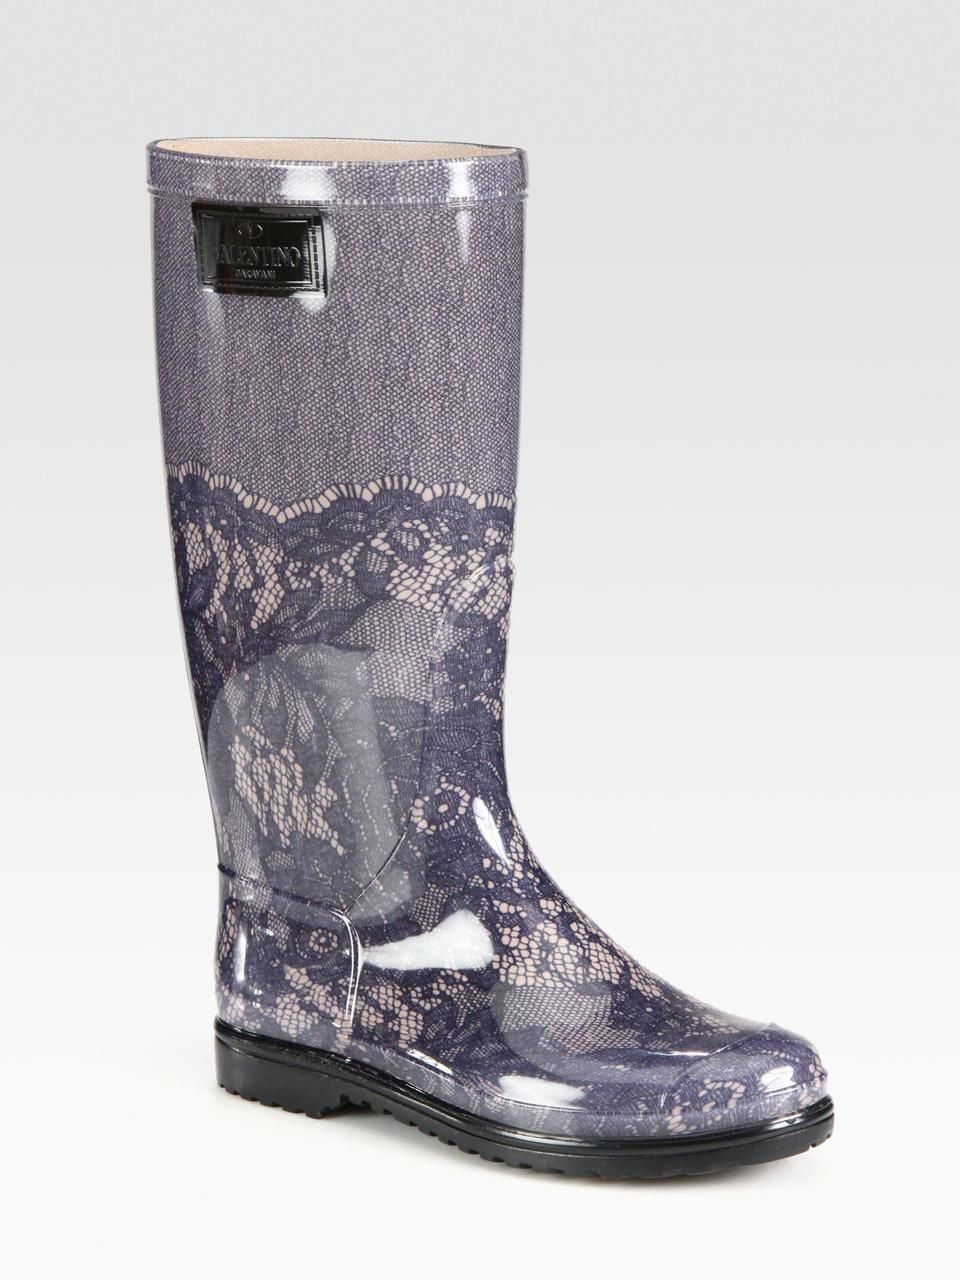 Valentino Lace Rain Boots clearance big discount 2014 newest with paypal online lowest price online kdcSpwsdYz